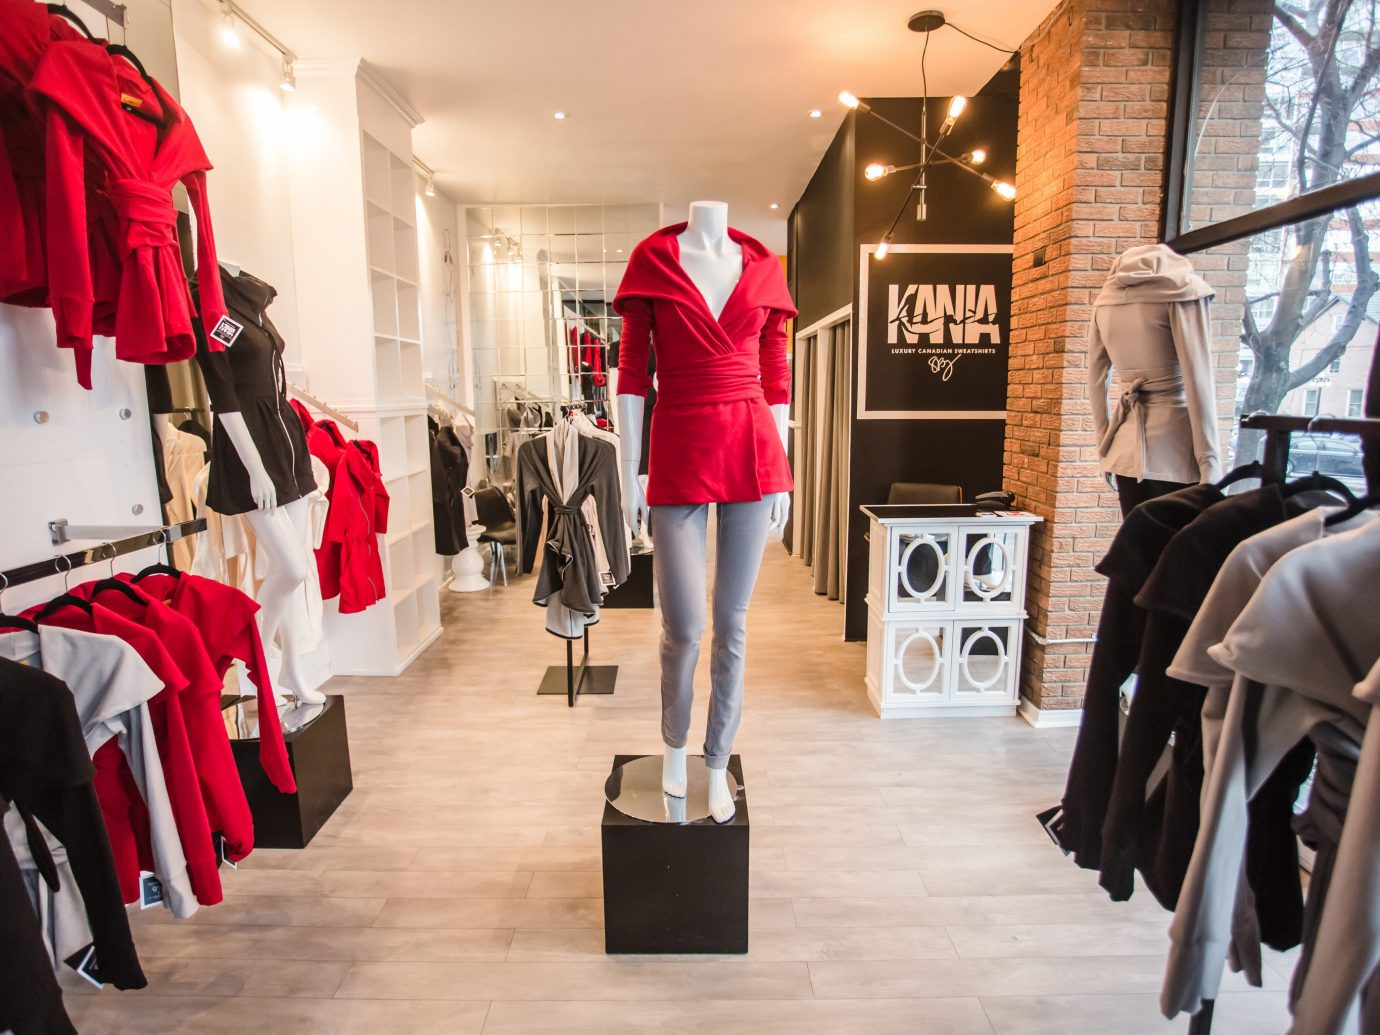 Style + Design floor indoor person Boutique clothing red retail fashion shopping spring dress display window fashion design